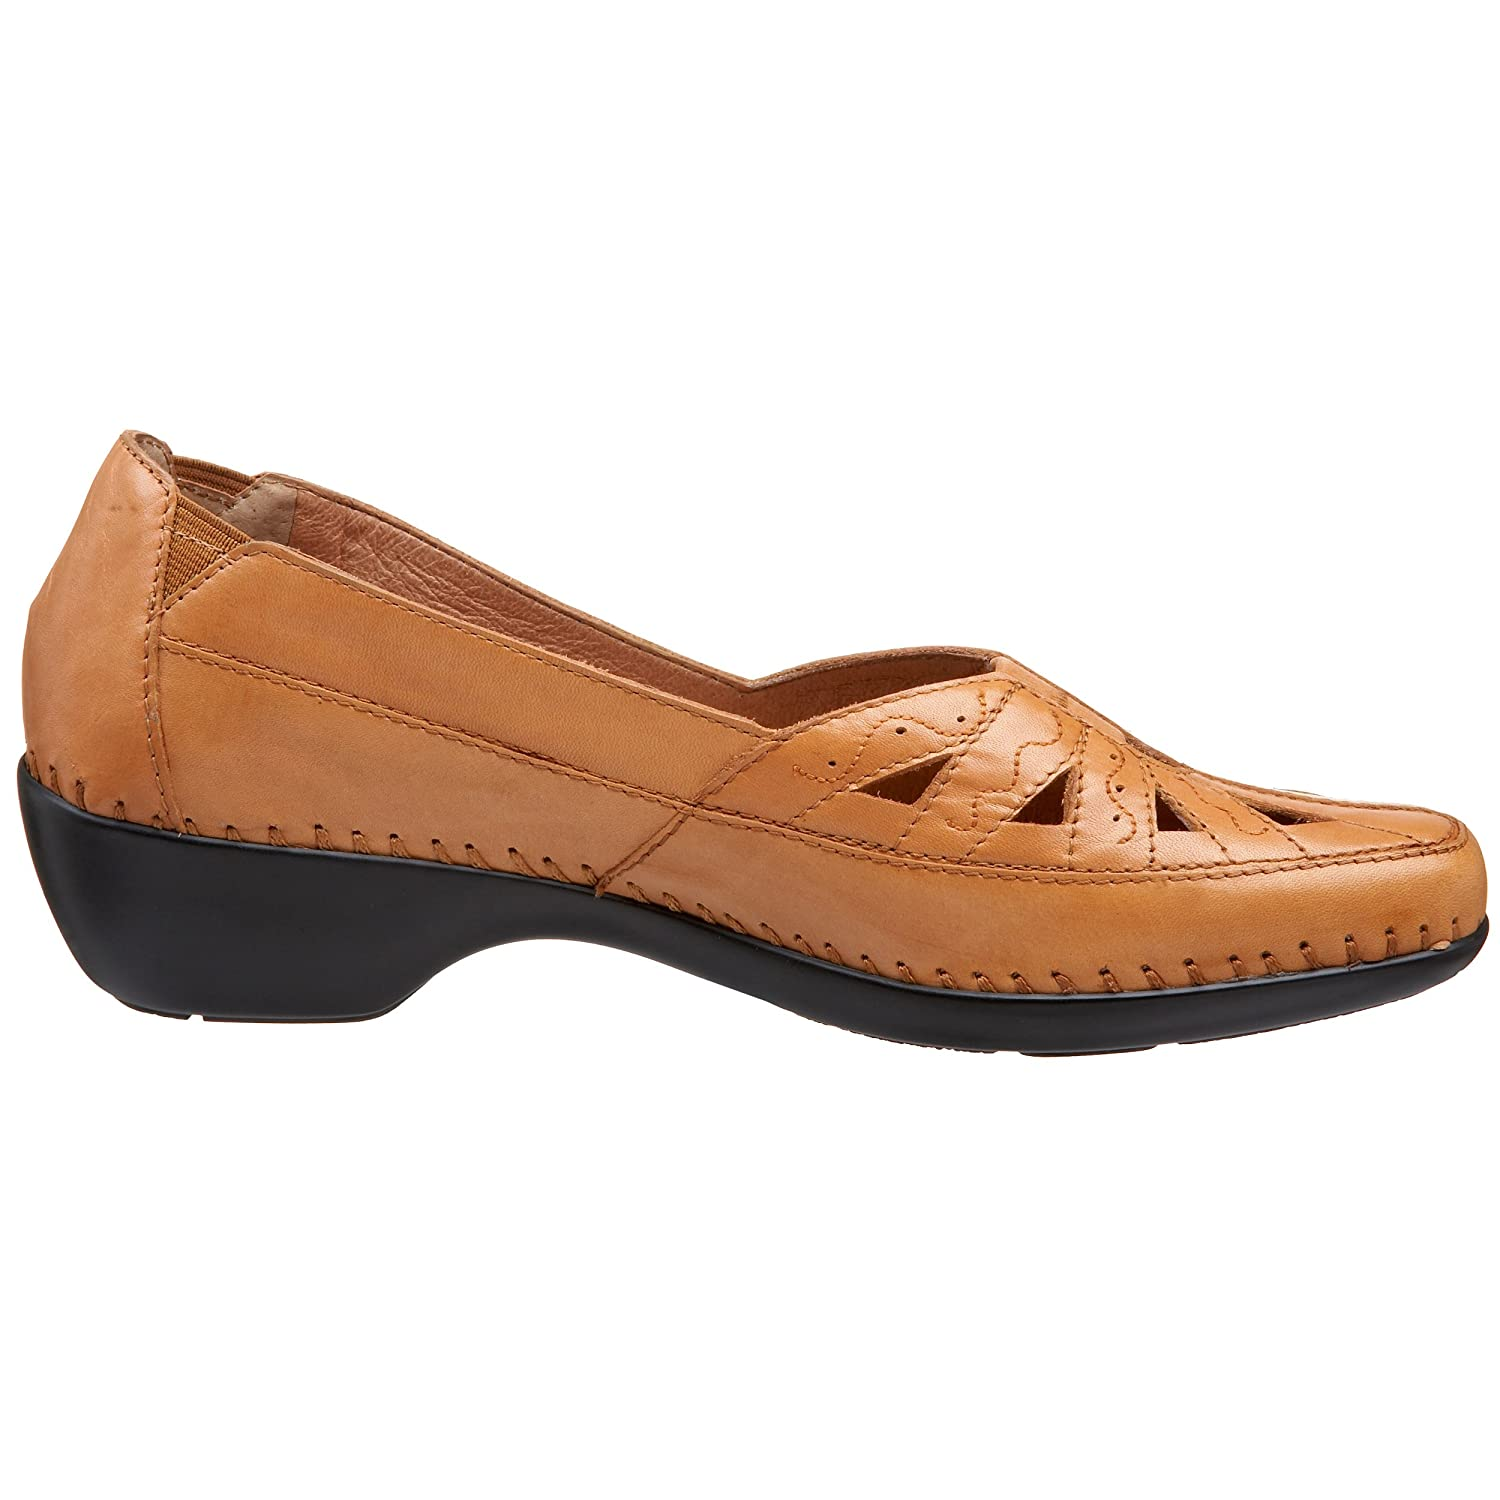 Easy Spirit Women's Dixiee Flat B001BKGTFS 7 B(M) US|Medium Brown Leather